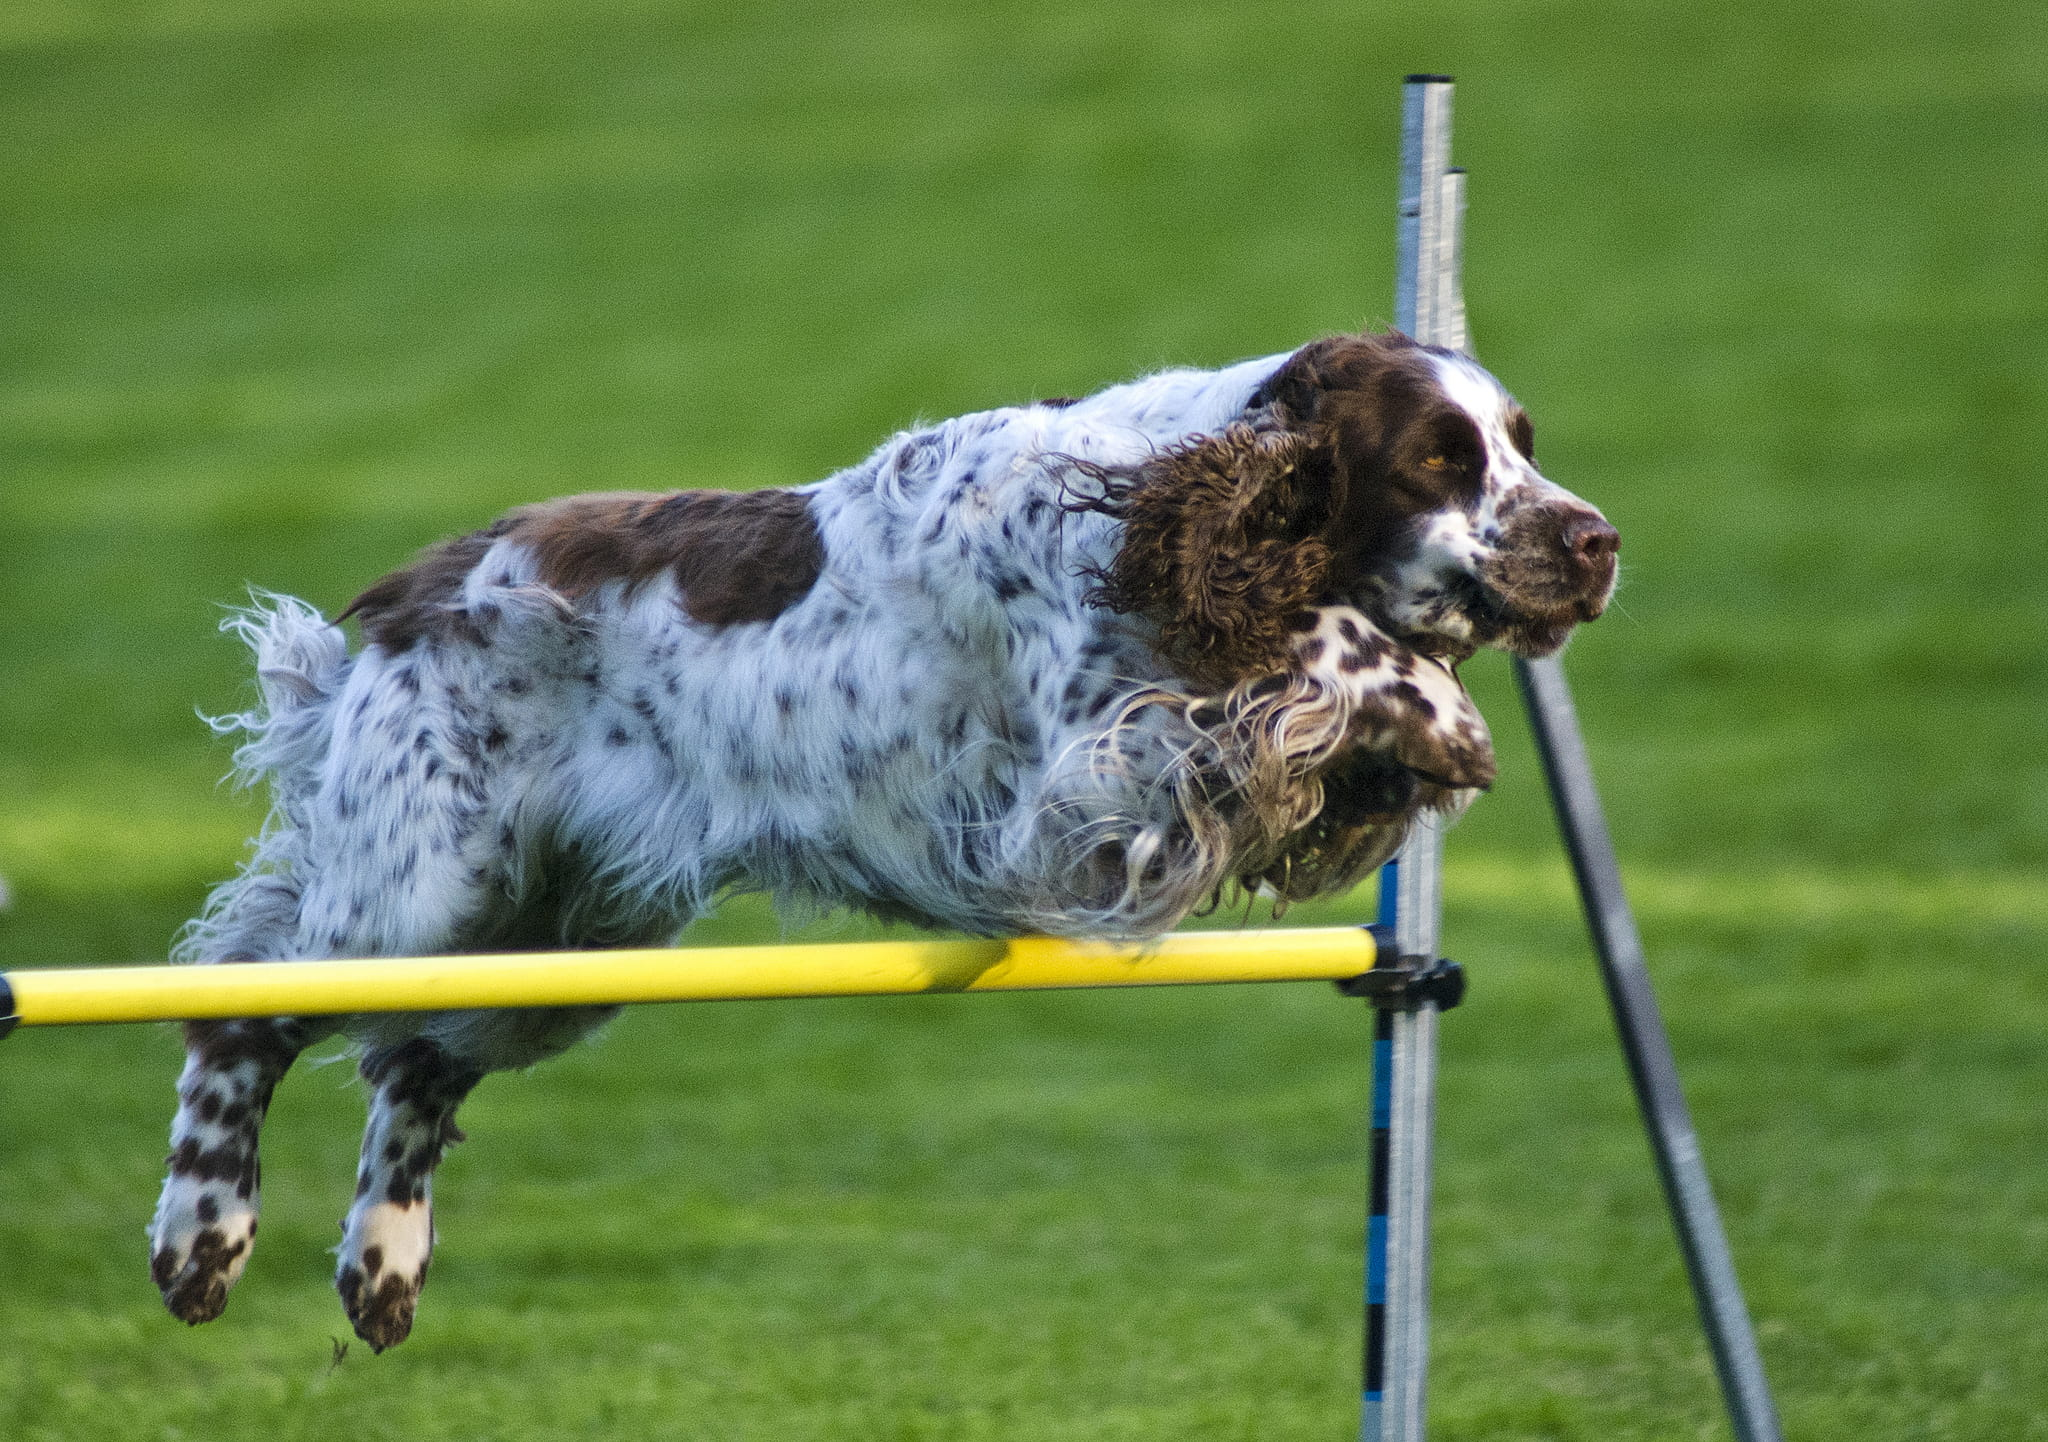 Agility Training for Dogs: Benefits and Starting Tips